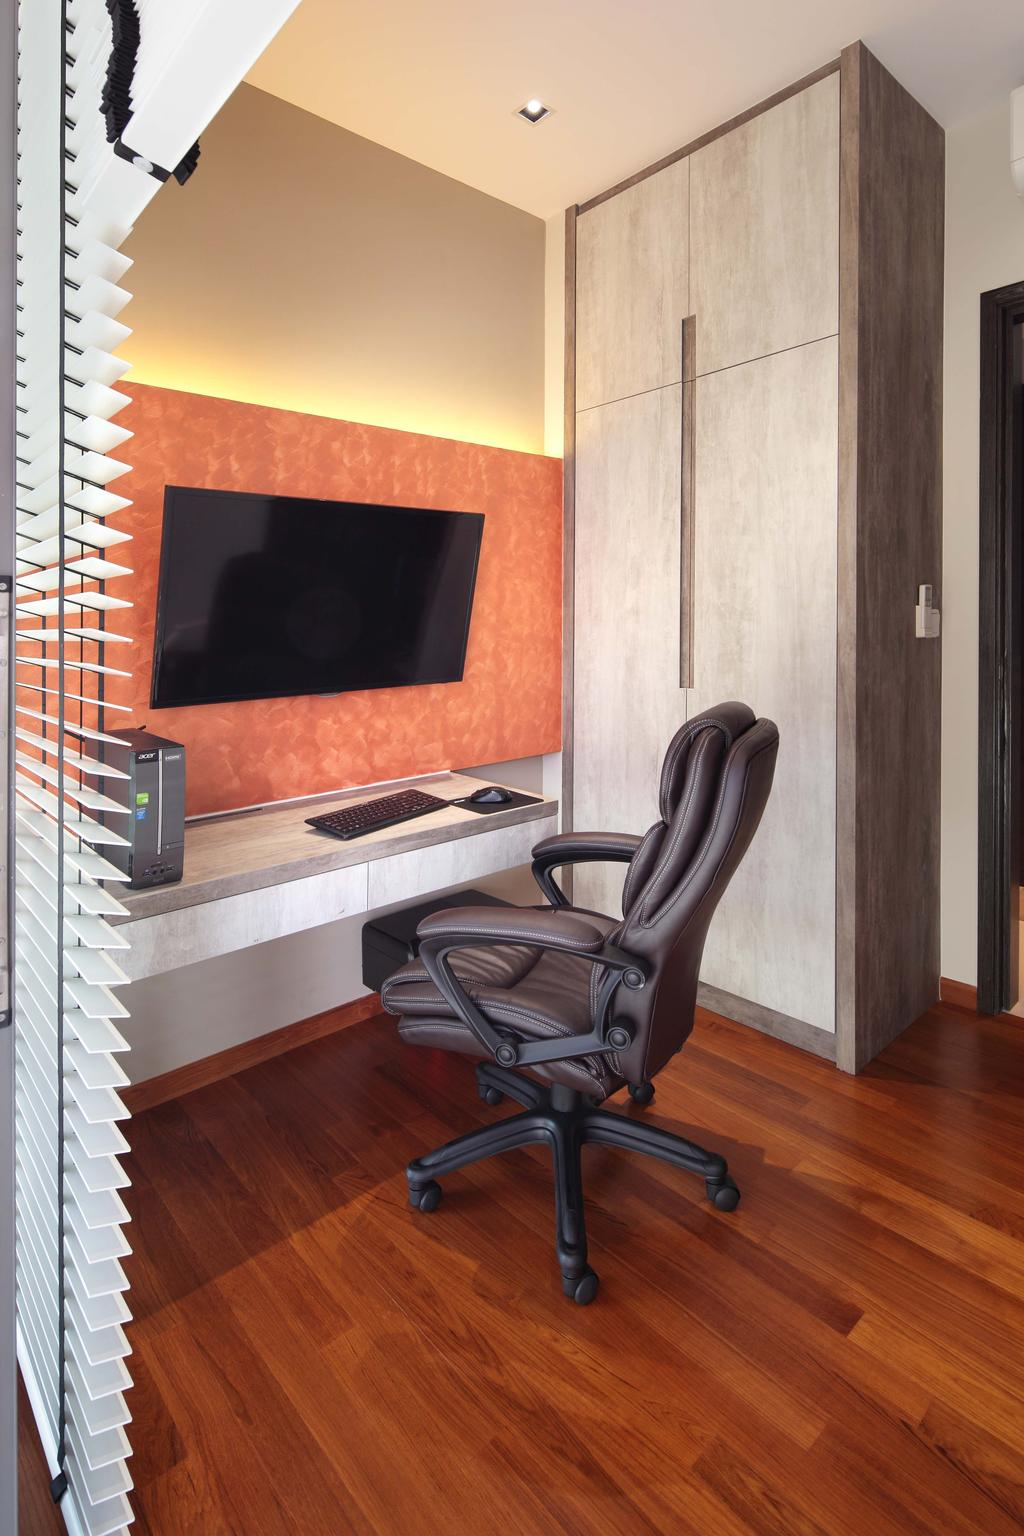 Contemporary, Condo, Study, The Vandelint, Interior Designer, Space Define Interior, Blinds, Venetian, Wall Mount Desk, Concealed Lighting, Concealed Light, Parquet, Wooden Flooring, Study Chair, Chair, Furniture, Fireplace, Hearth